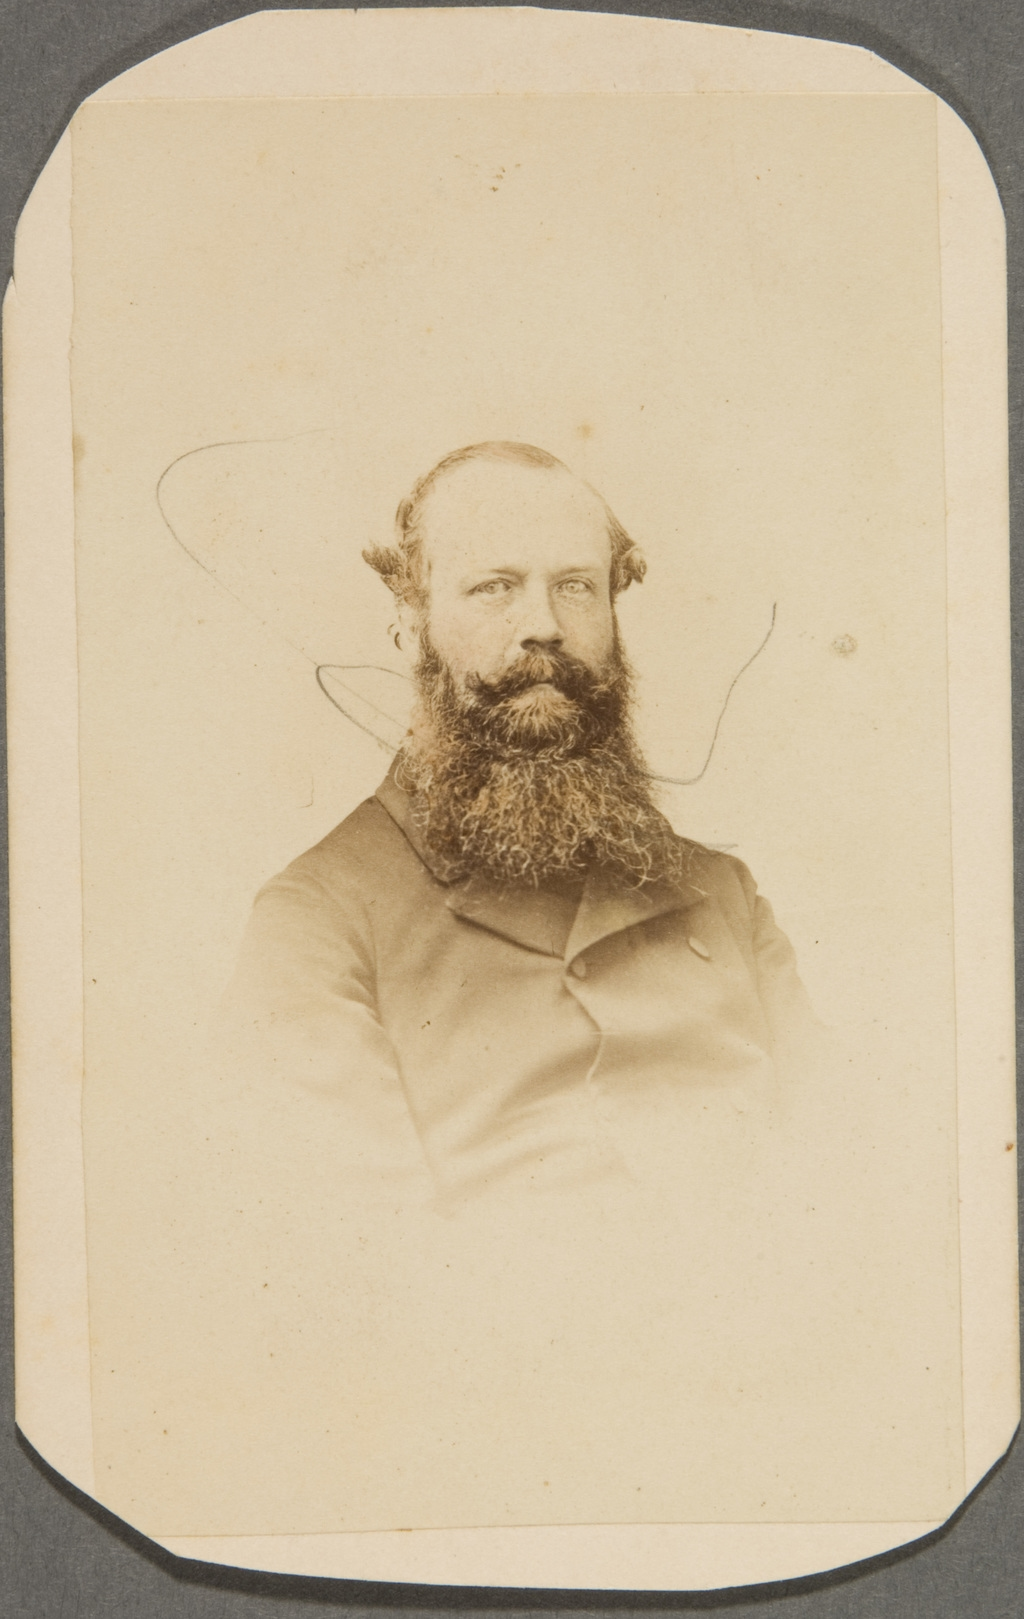 Lord Charles Stanley Monck